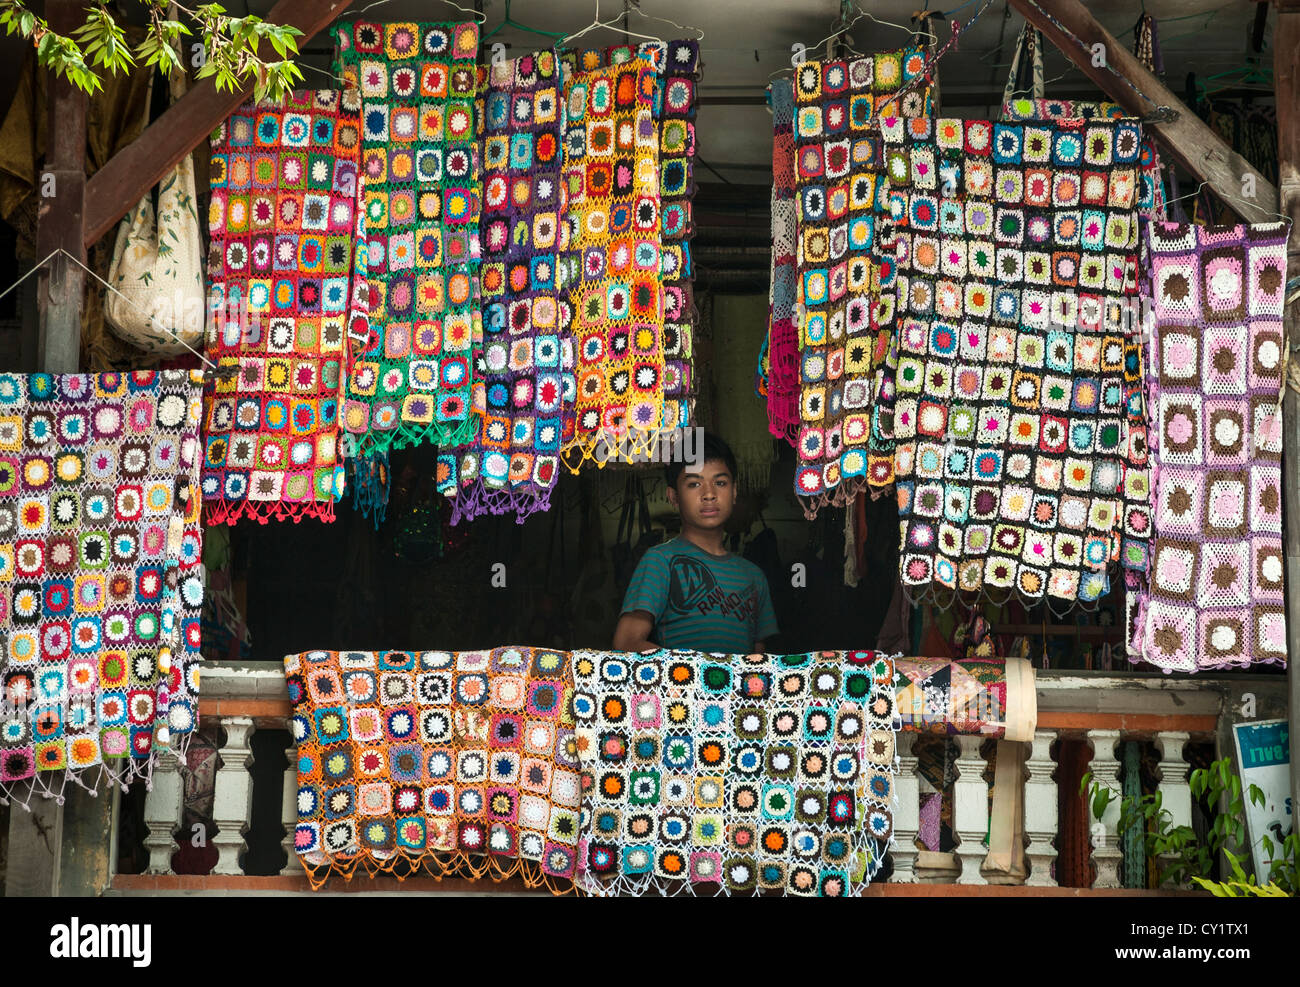 Crocheted textiles for sale at the market in Ubud, Bali, Indonesia - Stock Image